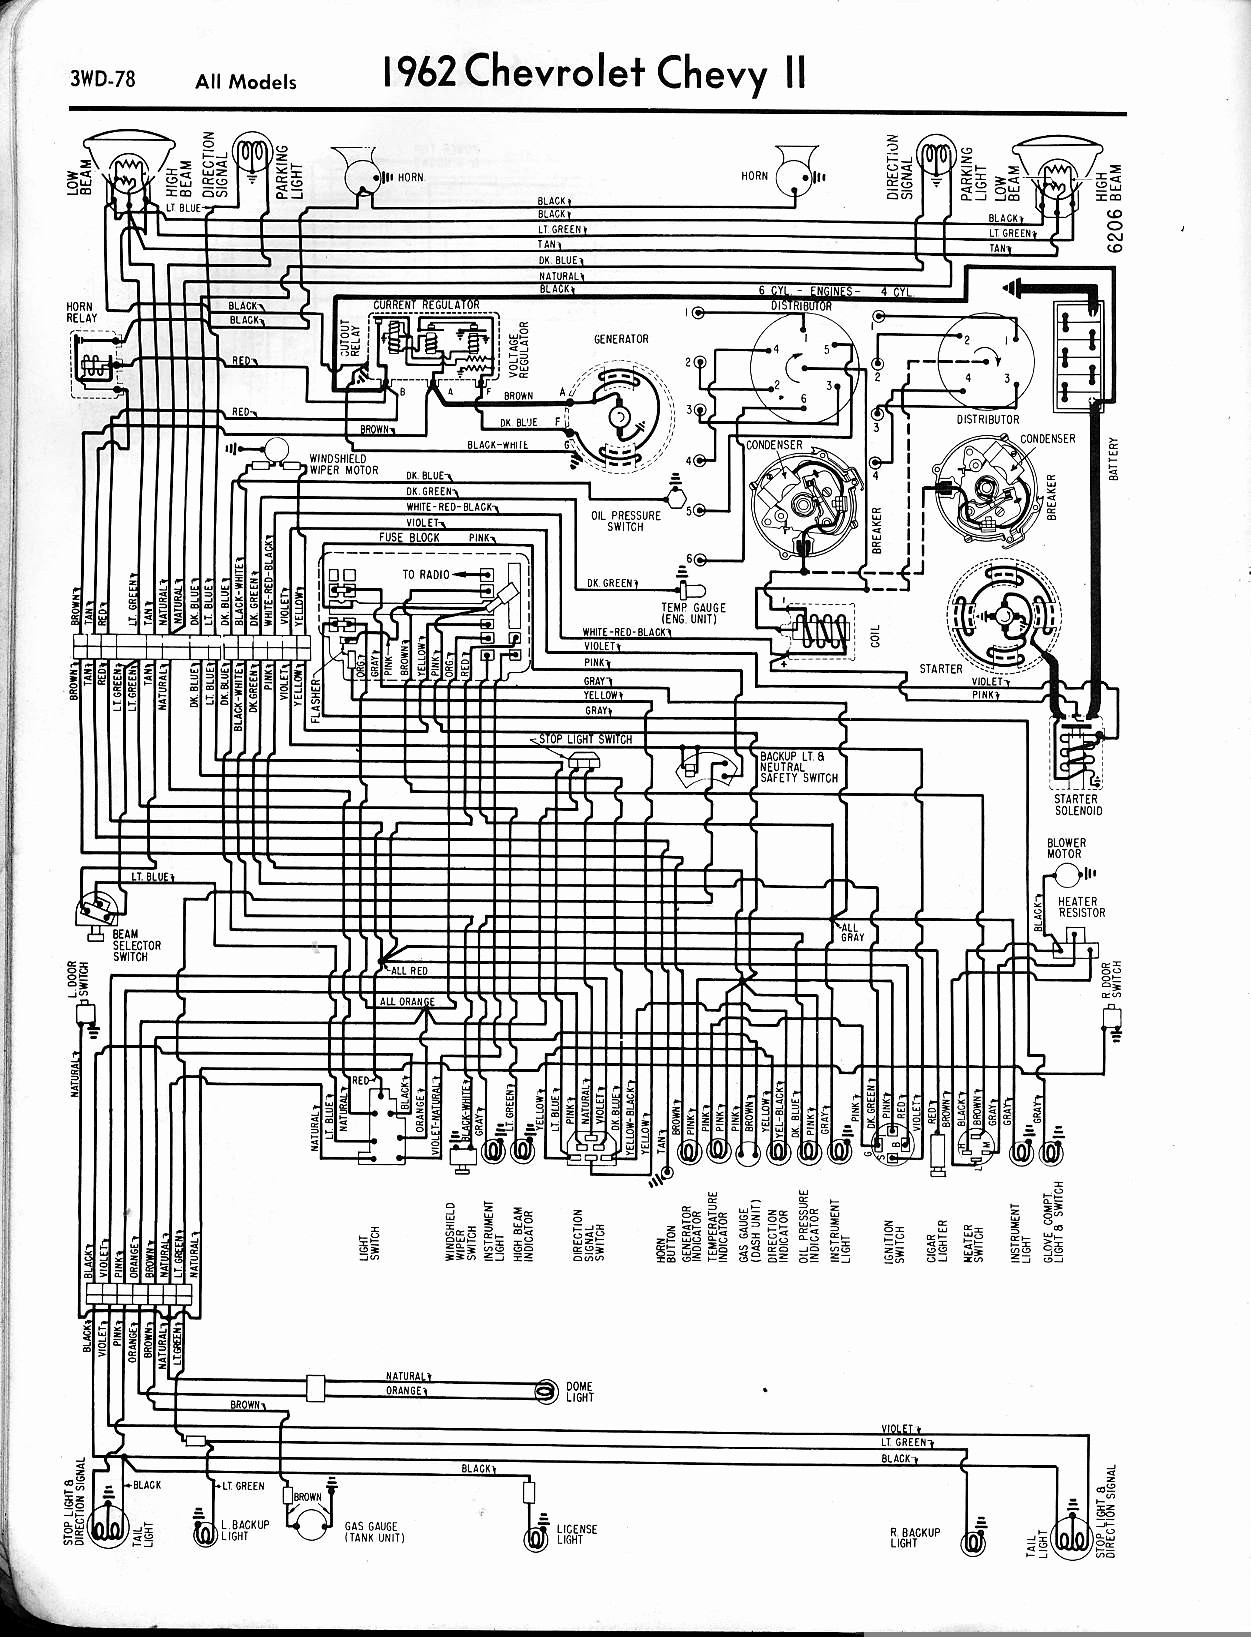 1968 impala wiring diagram wiring diagrams u2022 rh autonomia co